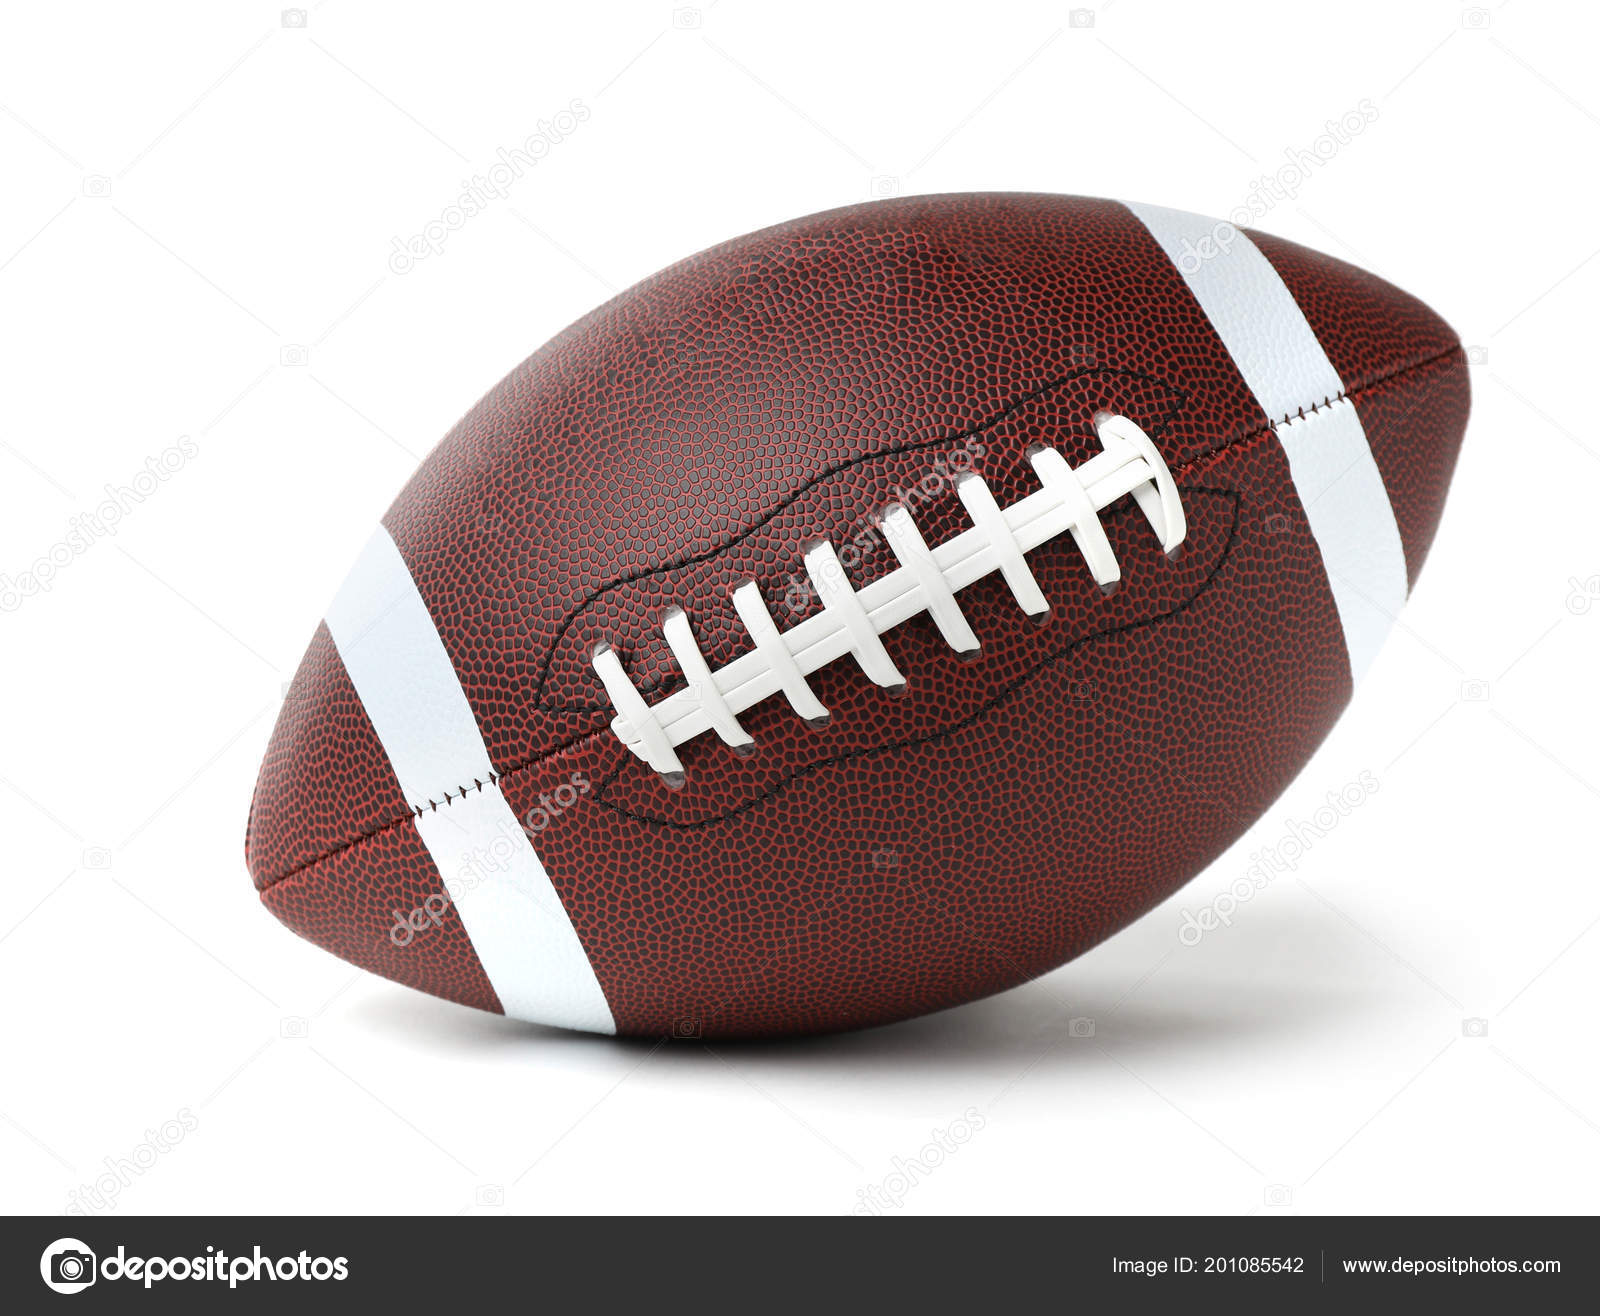 Leather American Football Ball White Background Stock Photo C Liudmilachernetska Gmail Com 201085542